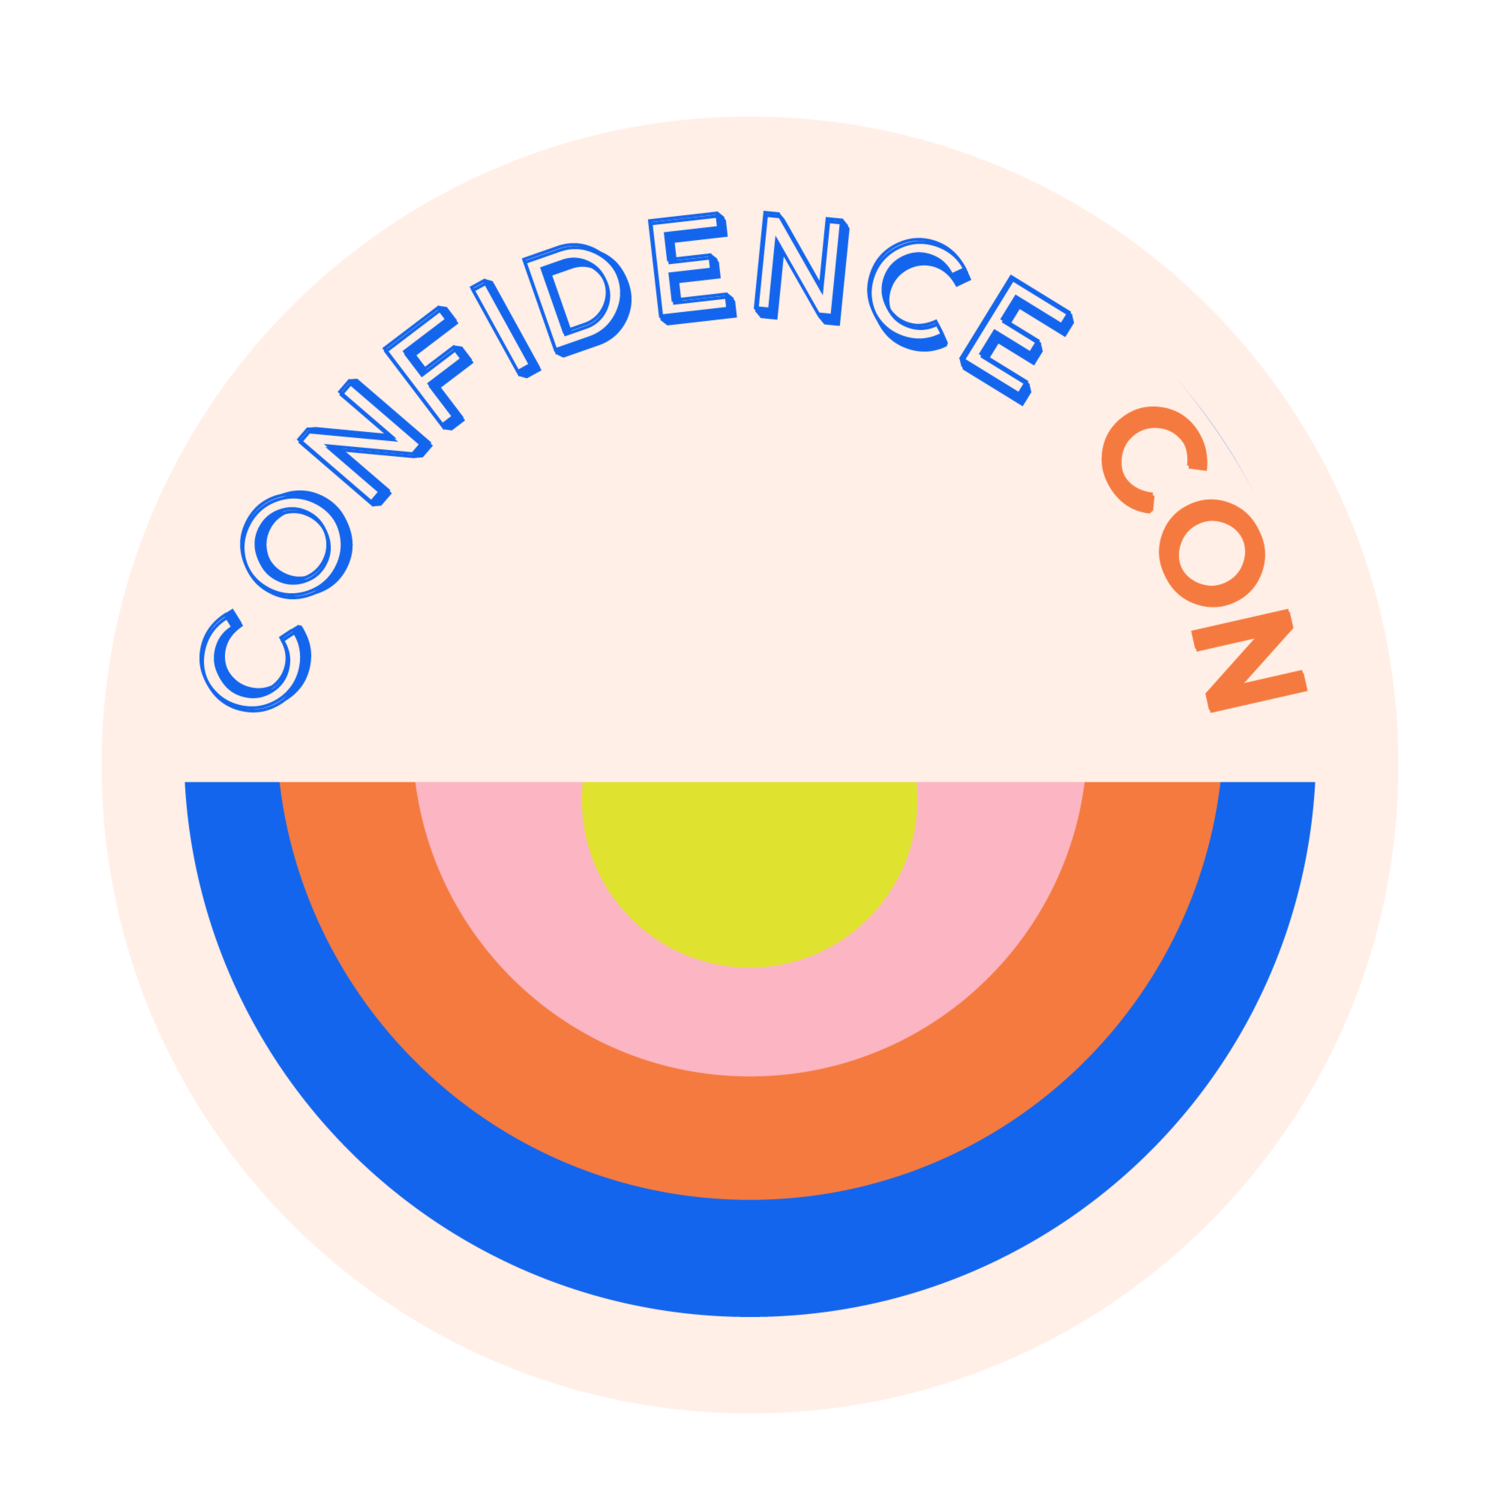 ConfidenceCon